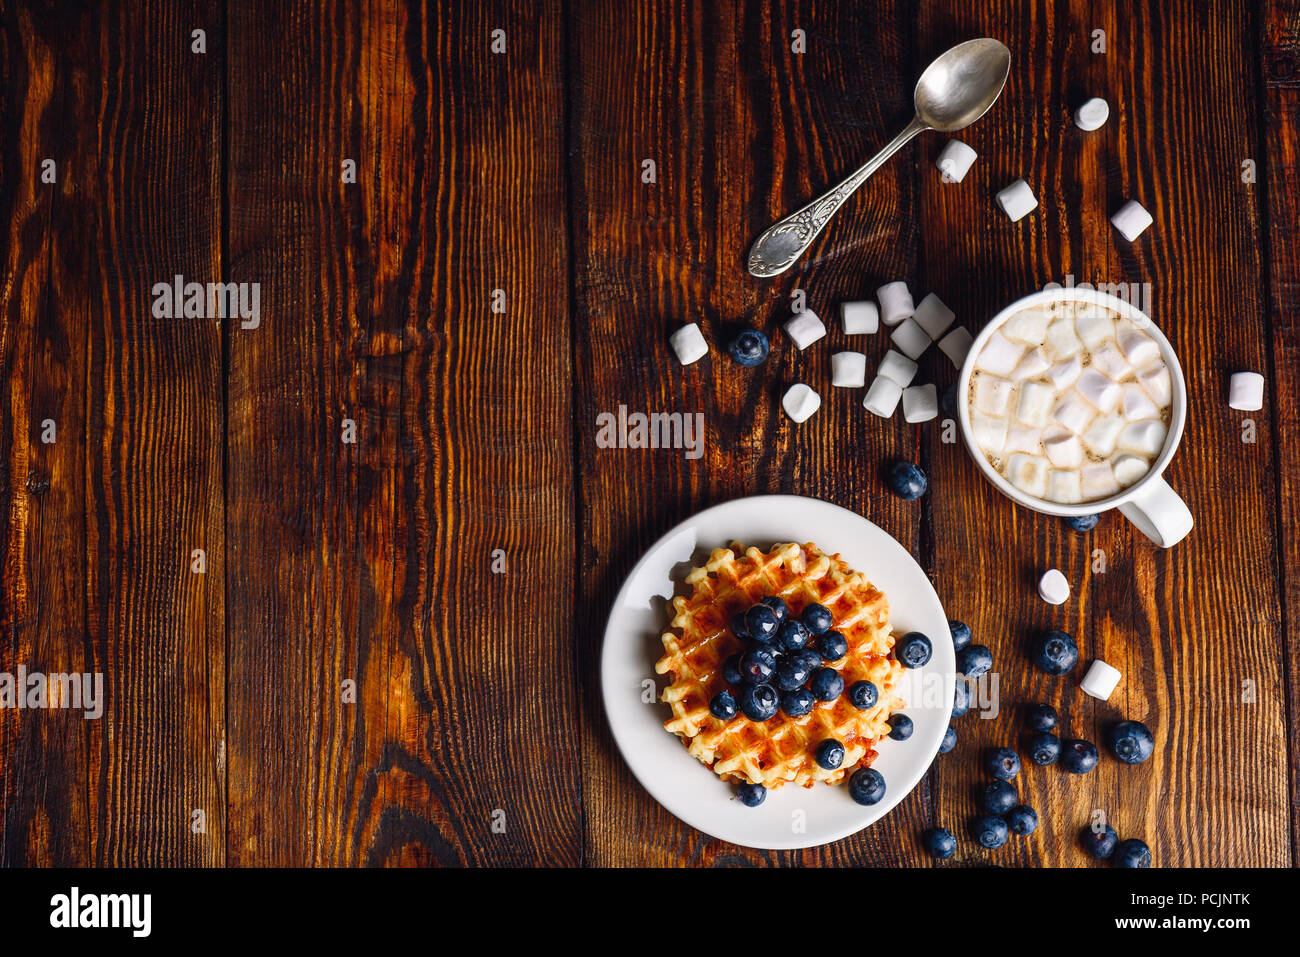 Homemade Waffles with Fresh Blueberry and Topping on Plate, Cup of Hot Chocolate with Marshmallow.Copy Space on the Left. Veiw from Above. - Stock Image